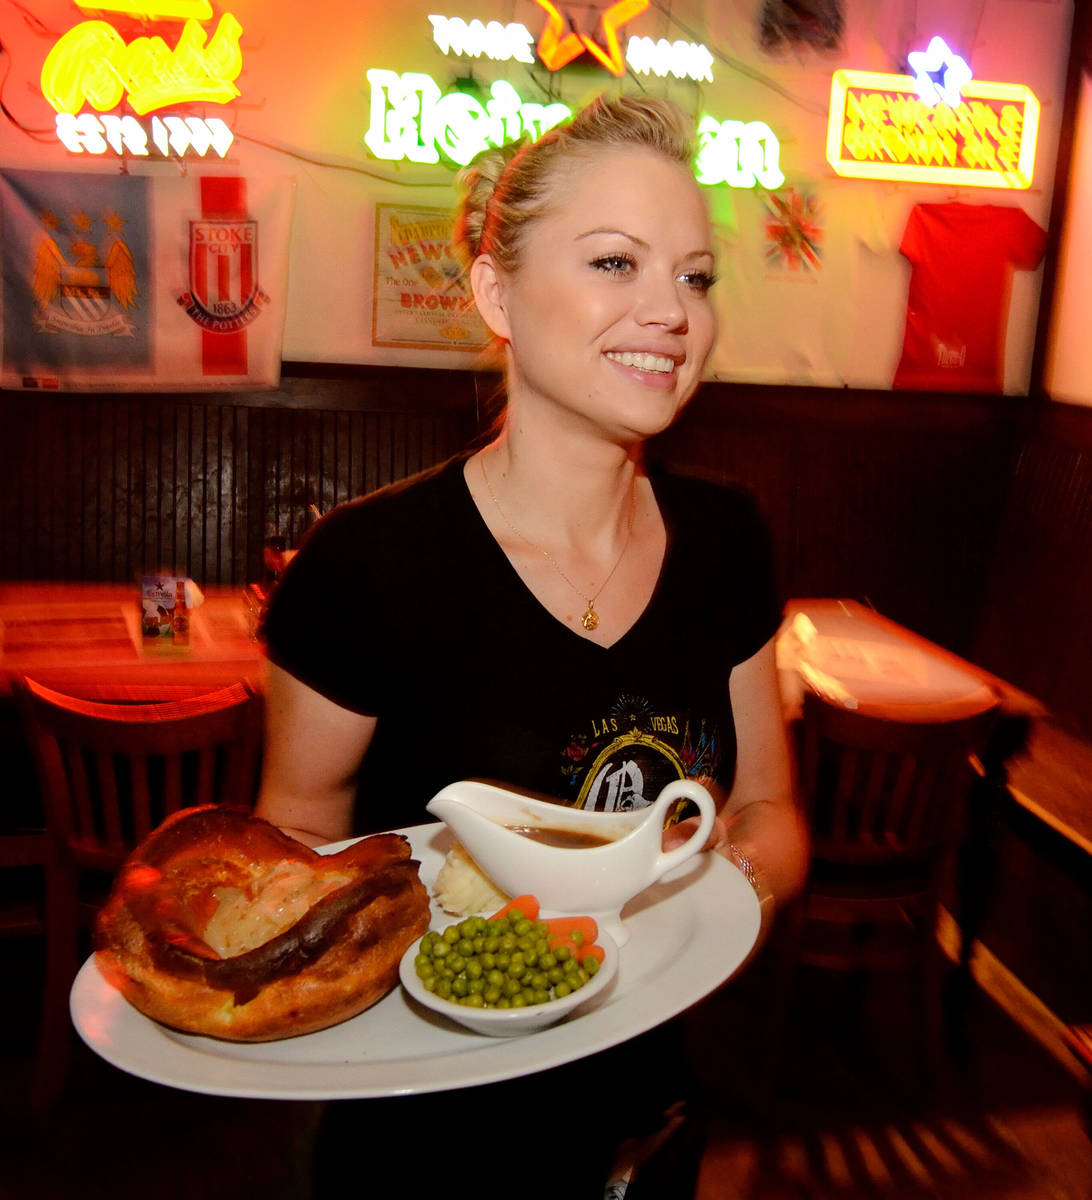 Christina Jones serves up an English dish known as a Toad in the Hole at the Queen Victoria Pub ...